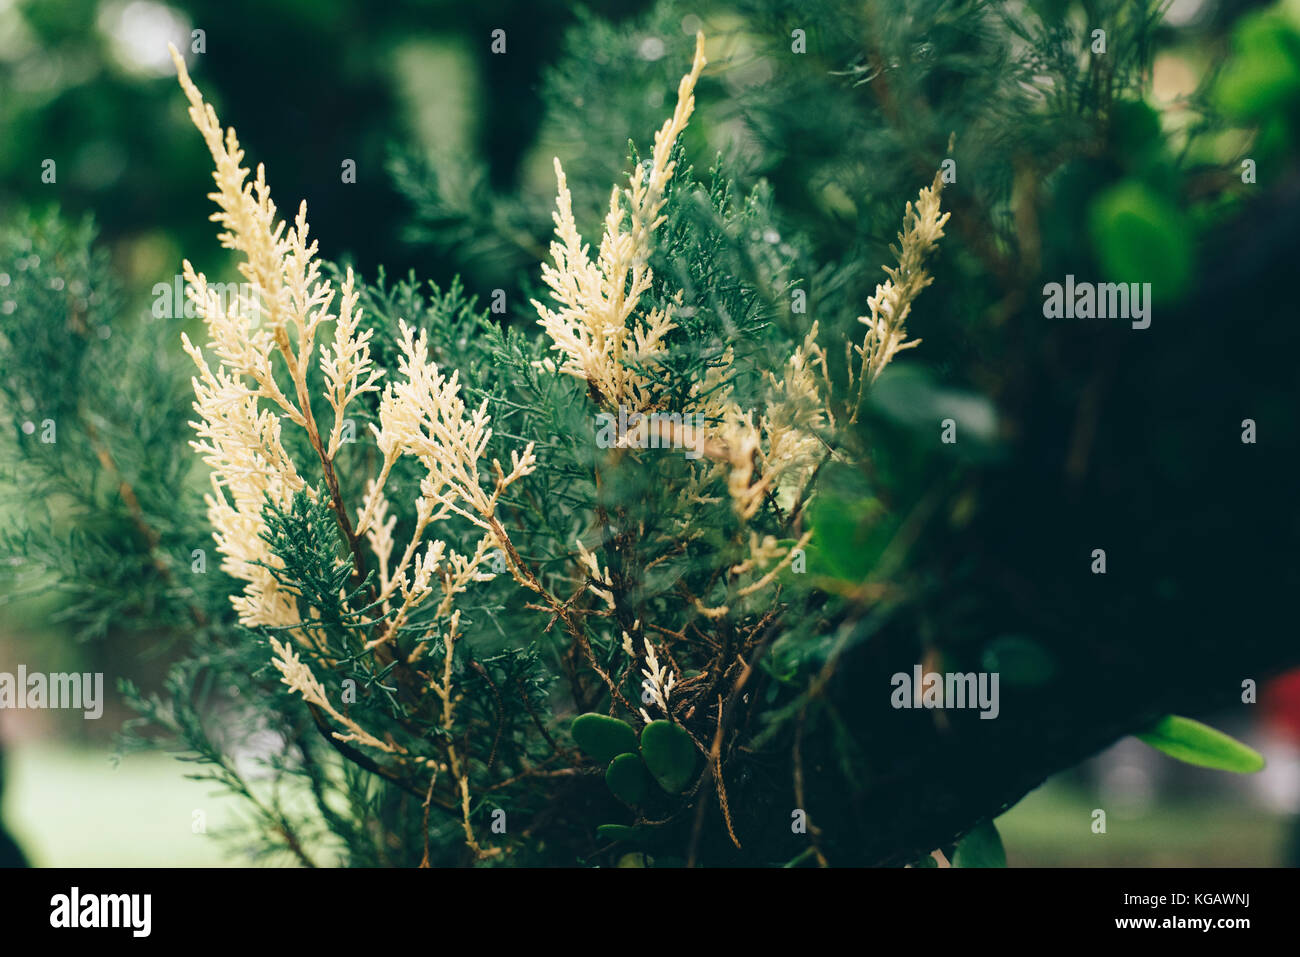 conifer roots stockfotos conifer roots bilder alamy. Black Bedroom Furniture Sets. Home Design Ideas